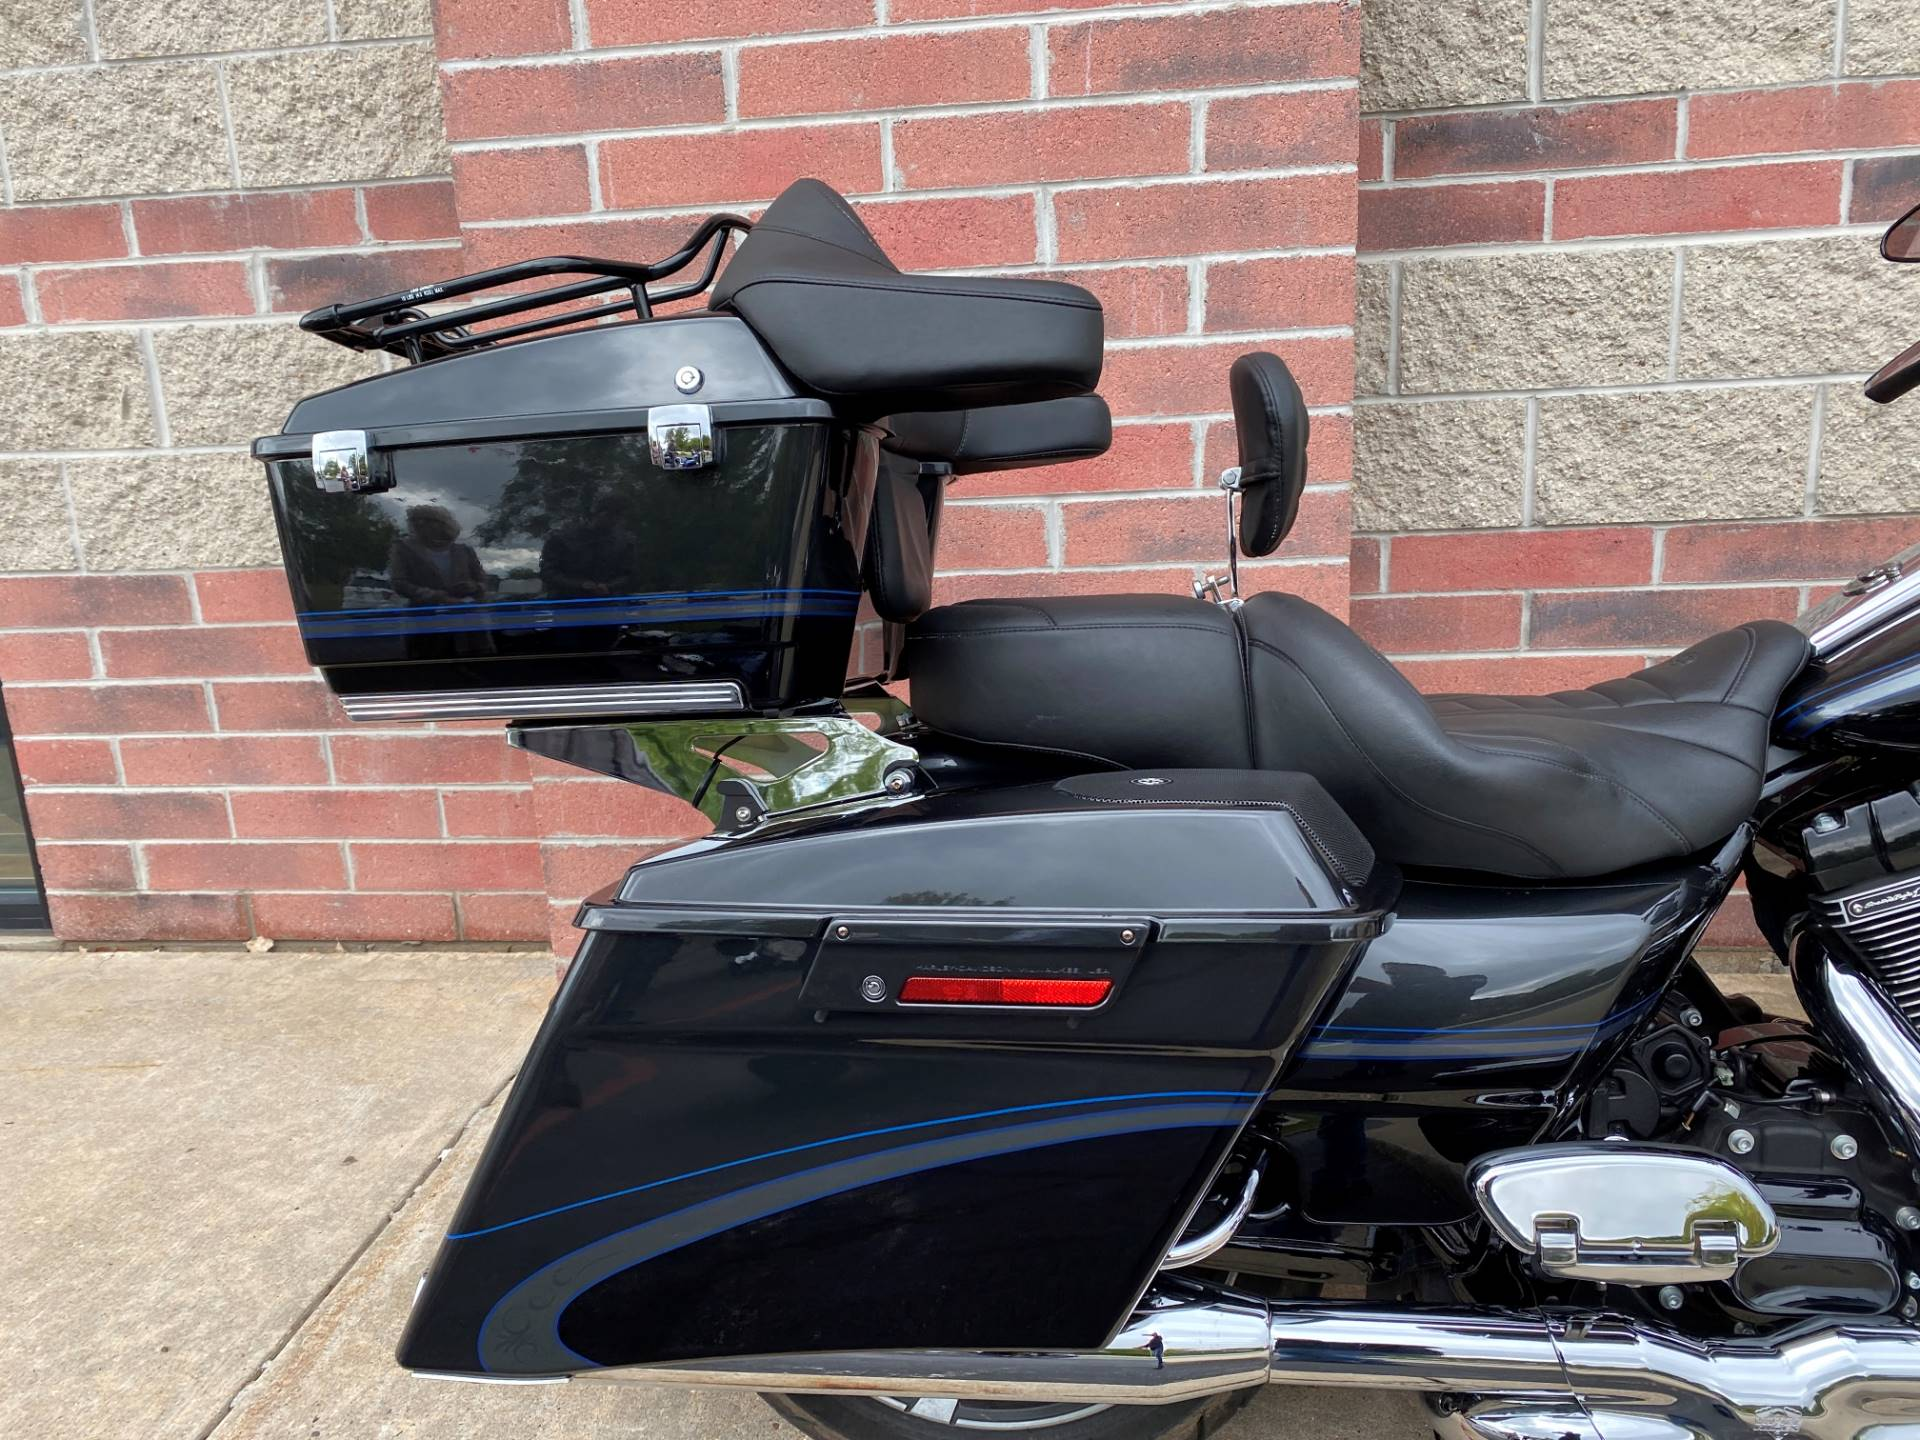 2013 Harley-Davidson CVO™ Road Glide® Custom 110th Anniversary Edition in Muskego, Wisconsin - Photo 7